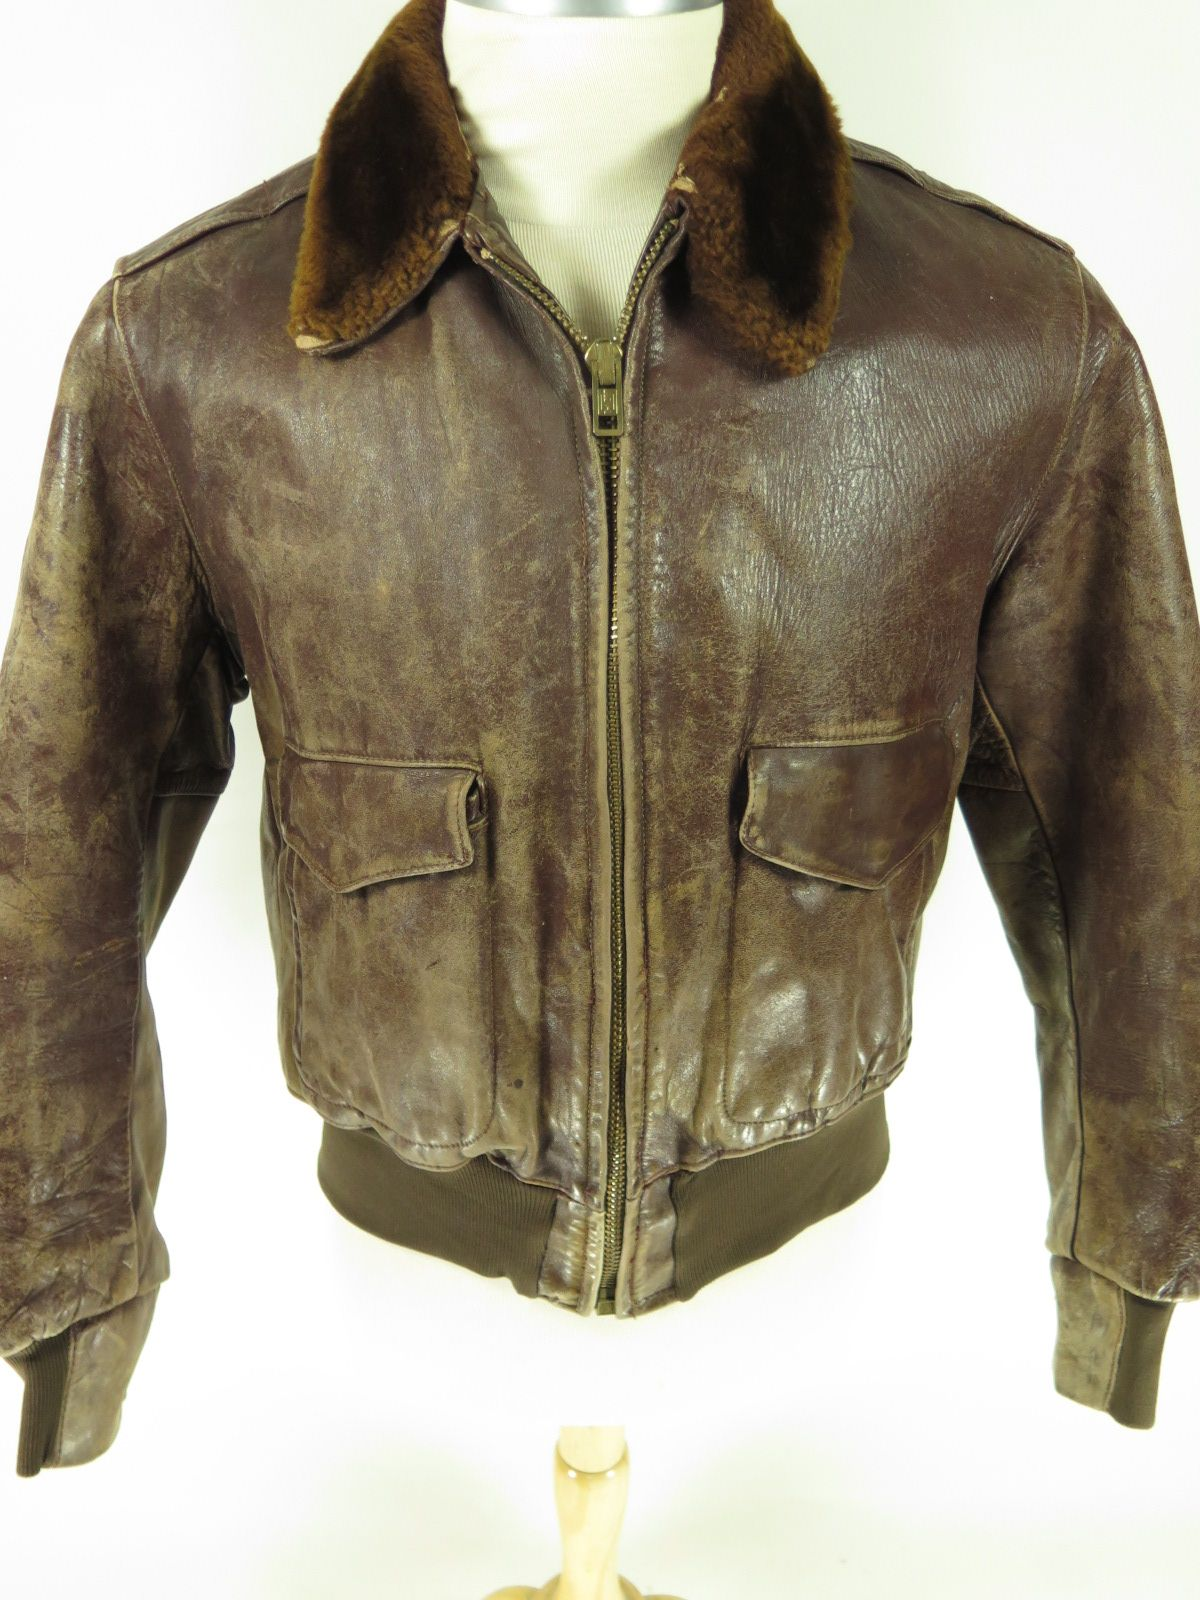 Vintage G1 Style Leather Bomber Flight Jacket With A Quilted Liner Find More Men S And Women S Authentic Vintage C Flight Jacket Leather Bomber Jacket Jackets [ 1600 x 1200 Pixel ]